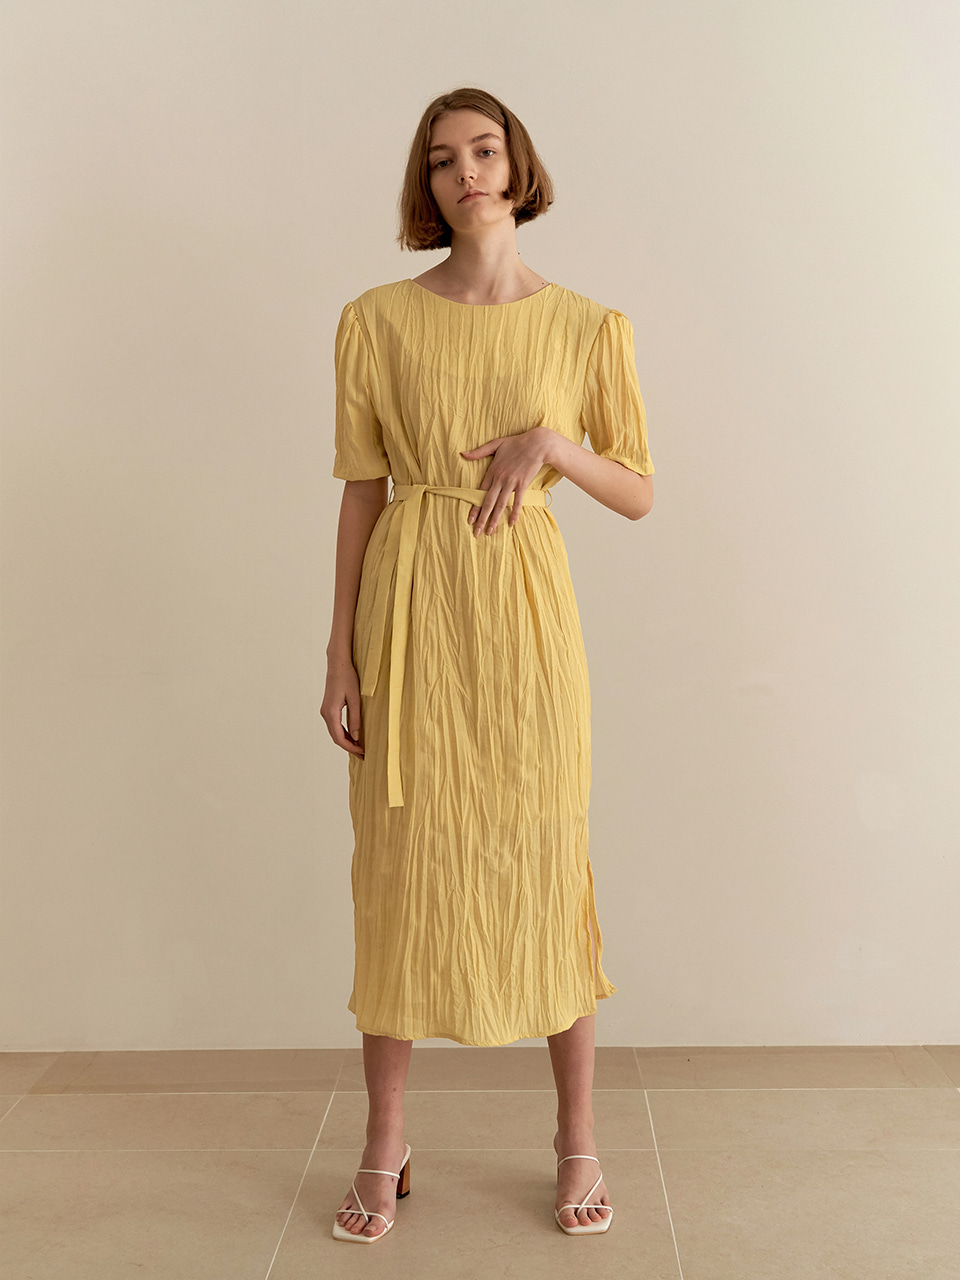 Wrinkle reversible dress - yellow